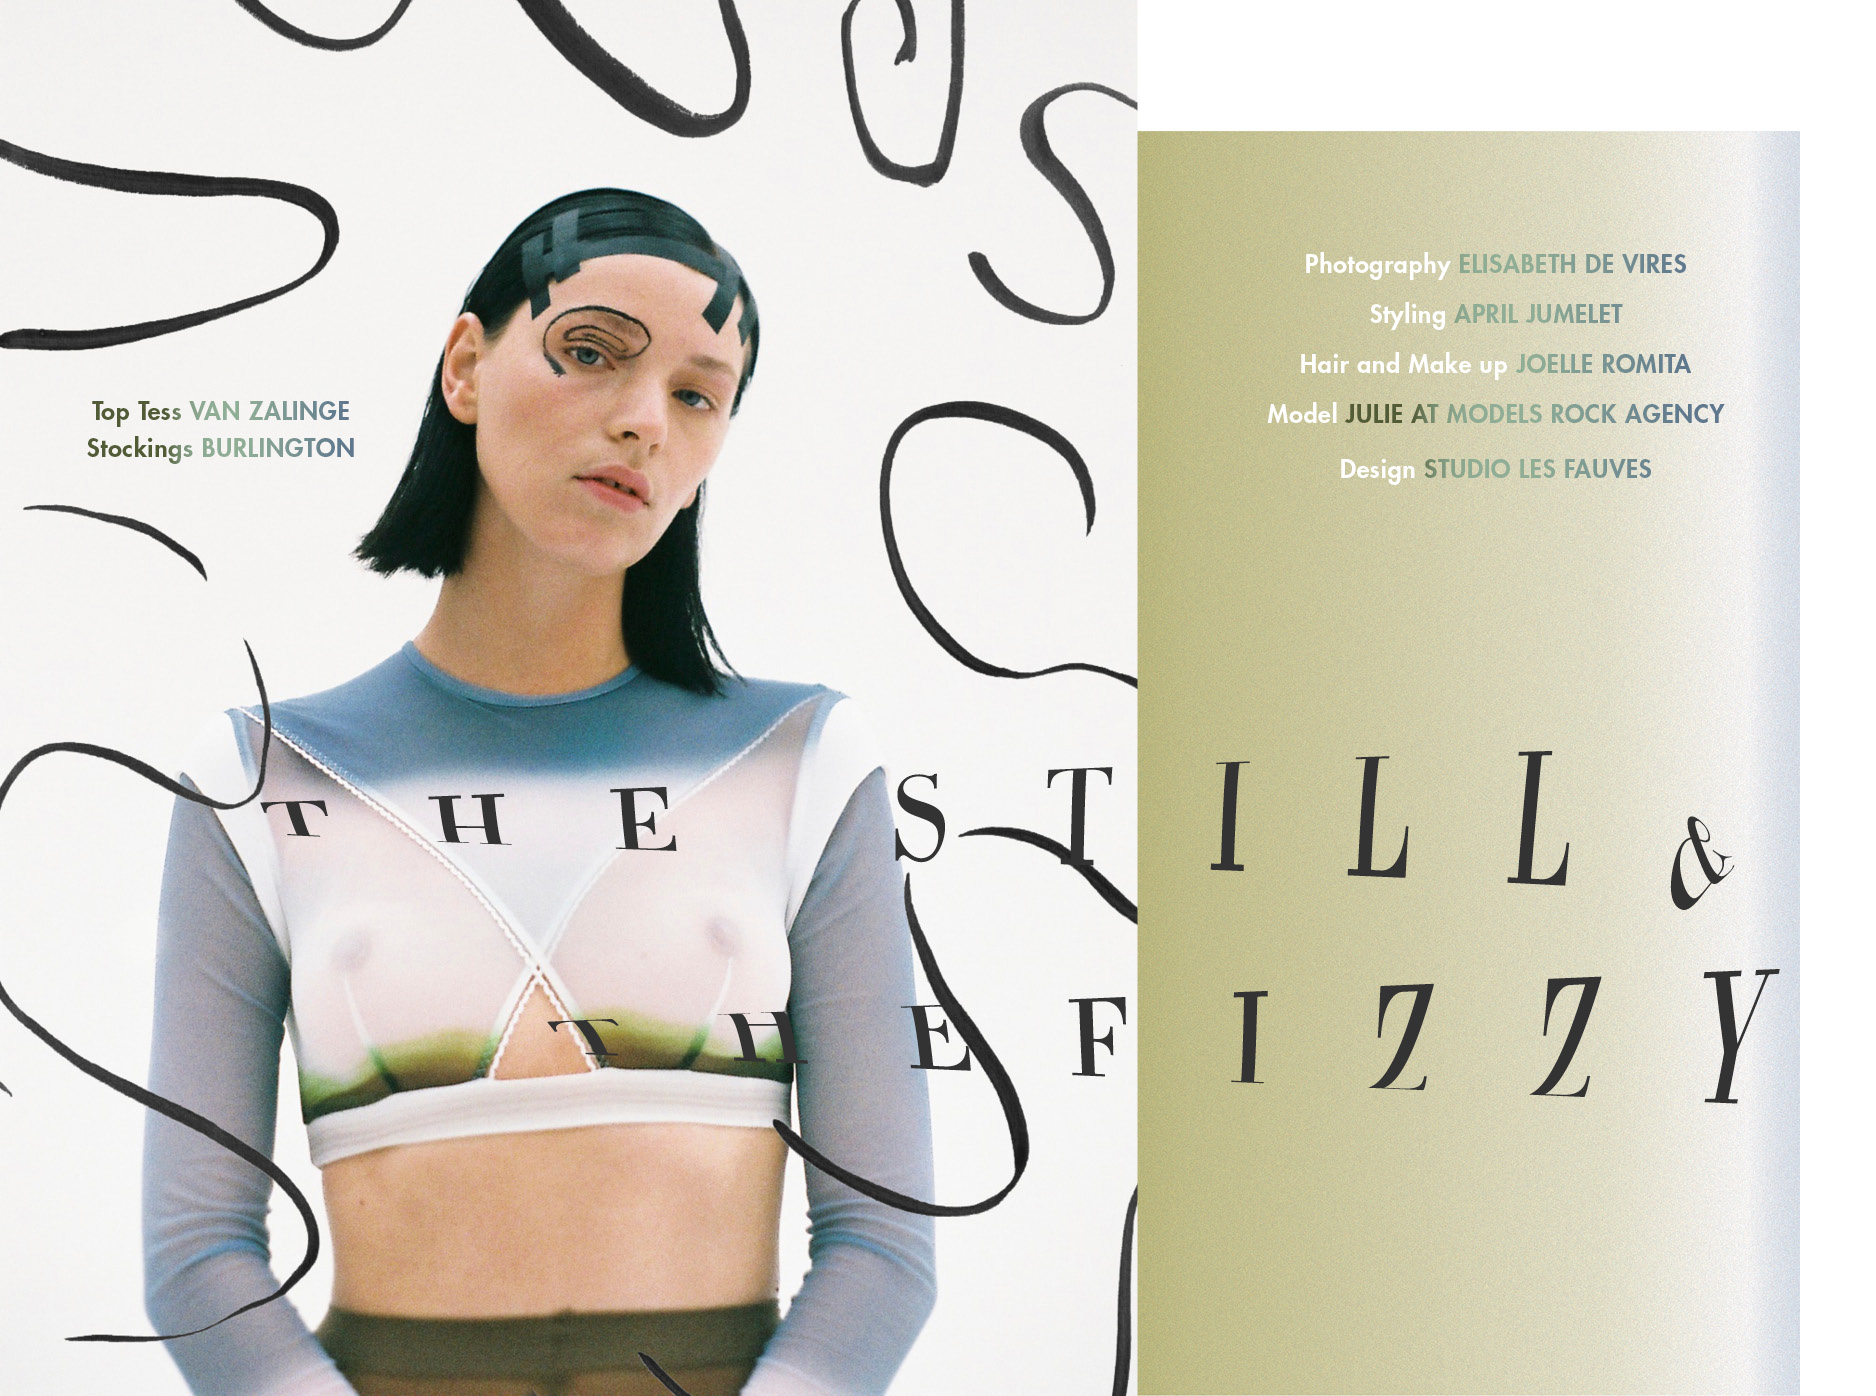 The Impermanence Issue / The still & the fizzy